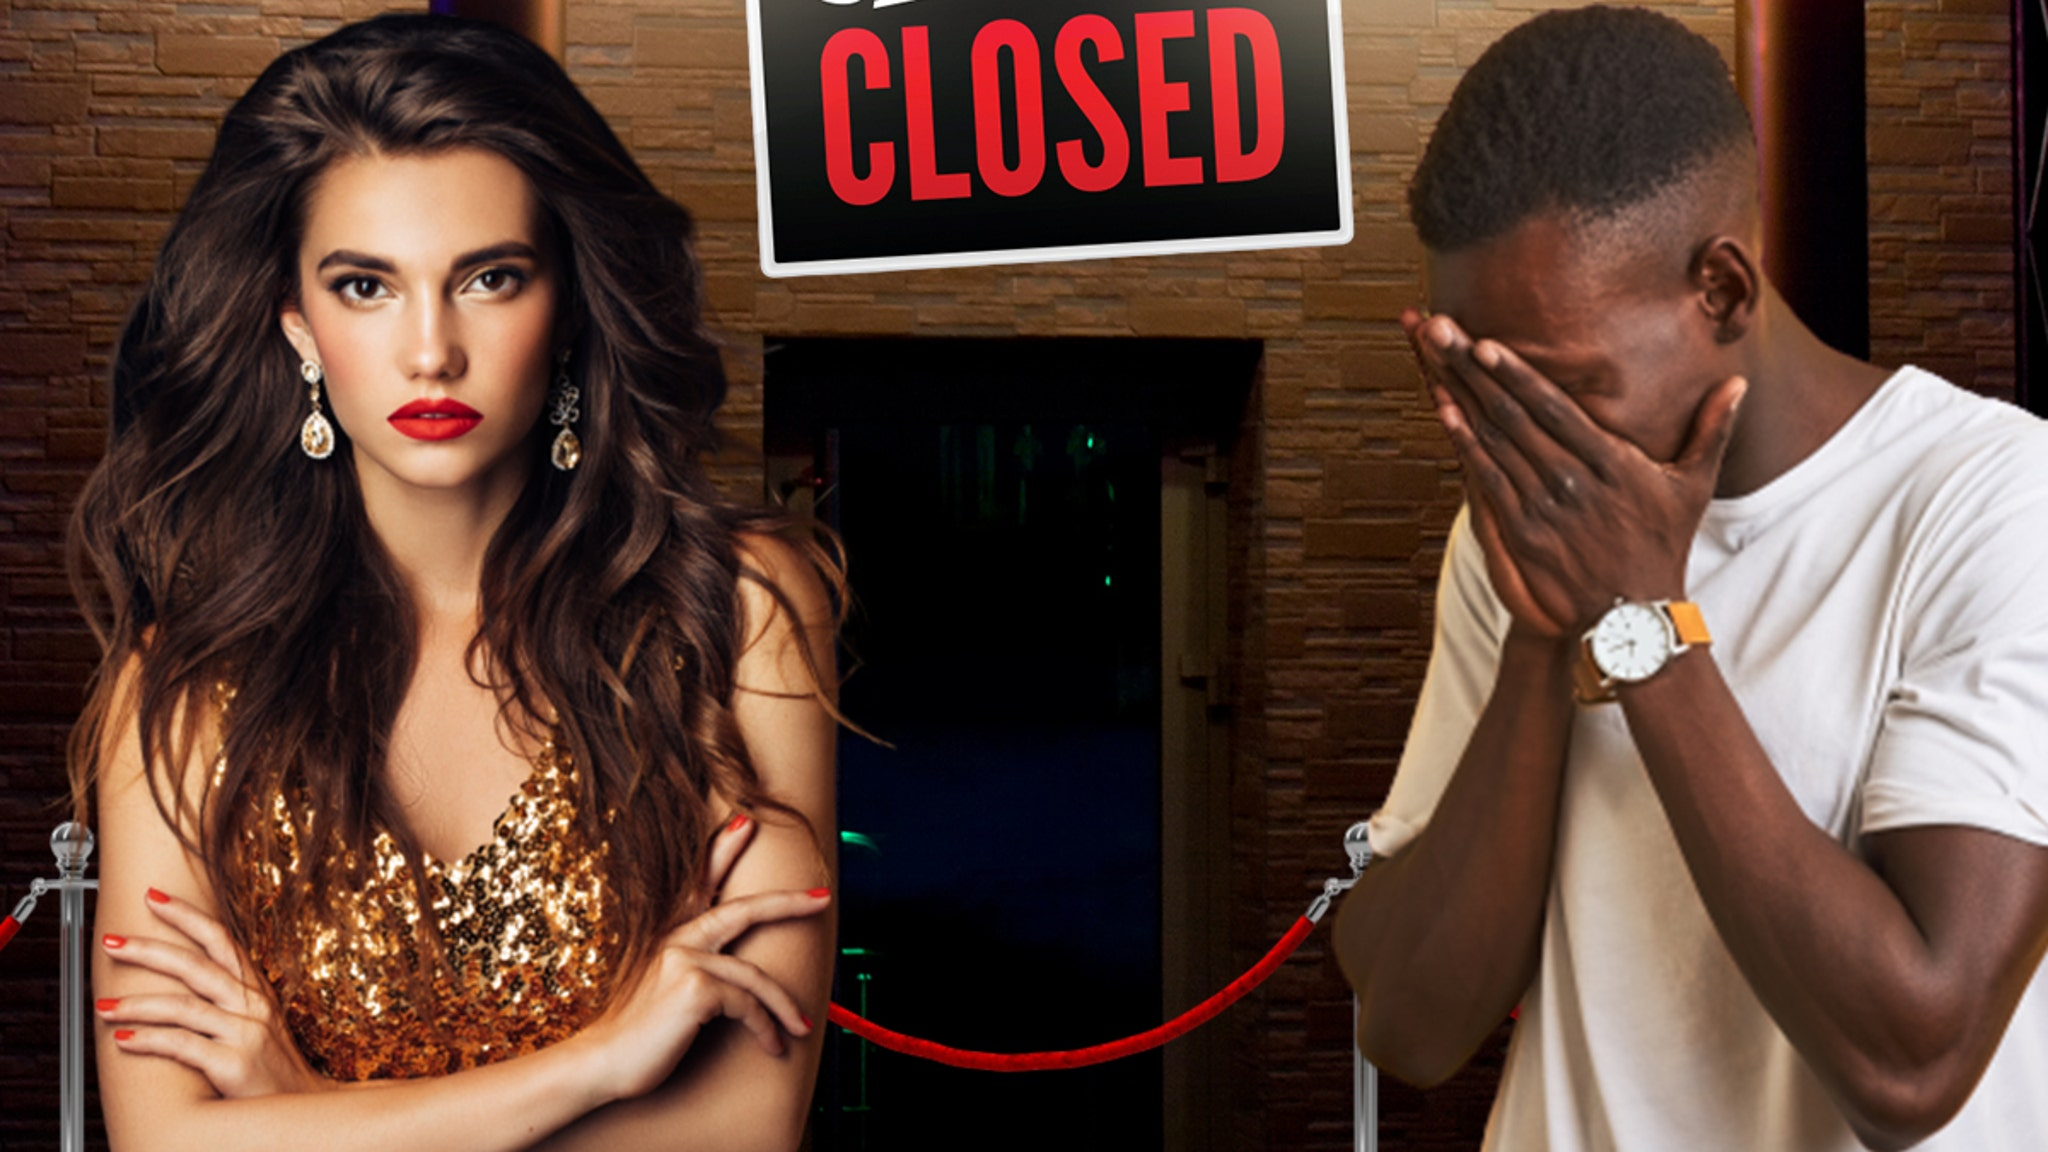 Hollywood Bar & Club Scene on Verge of Collapse After New Closure - TMZ